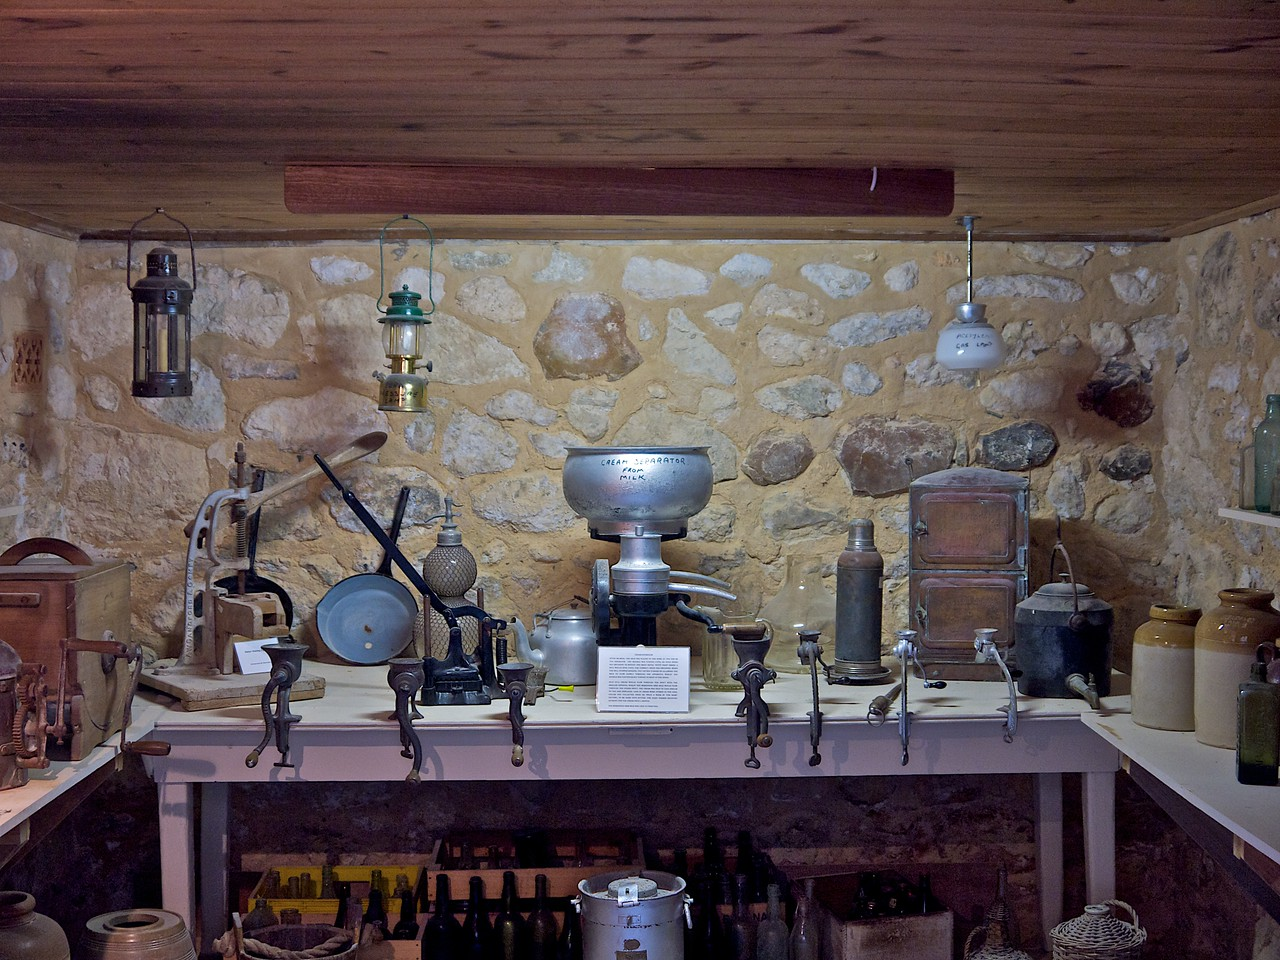 From the Cellar Display